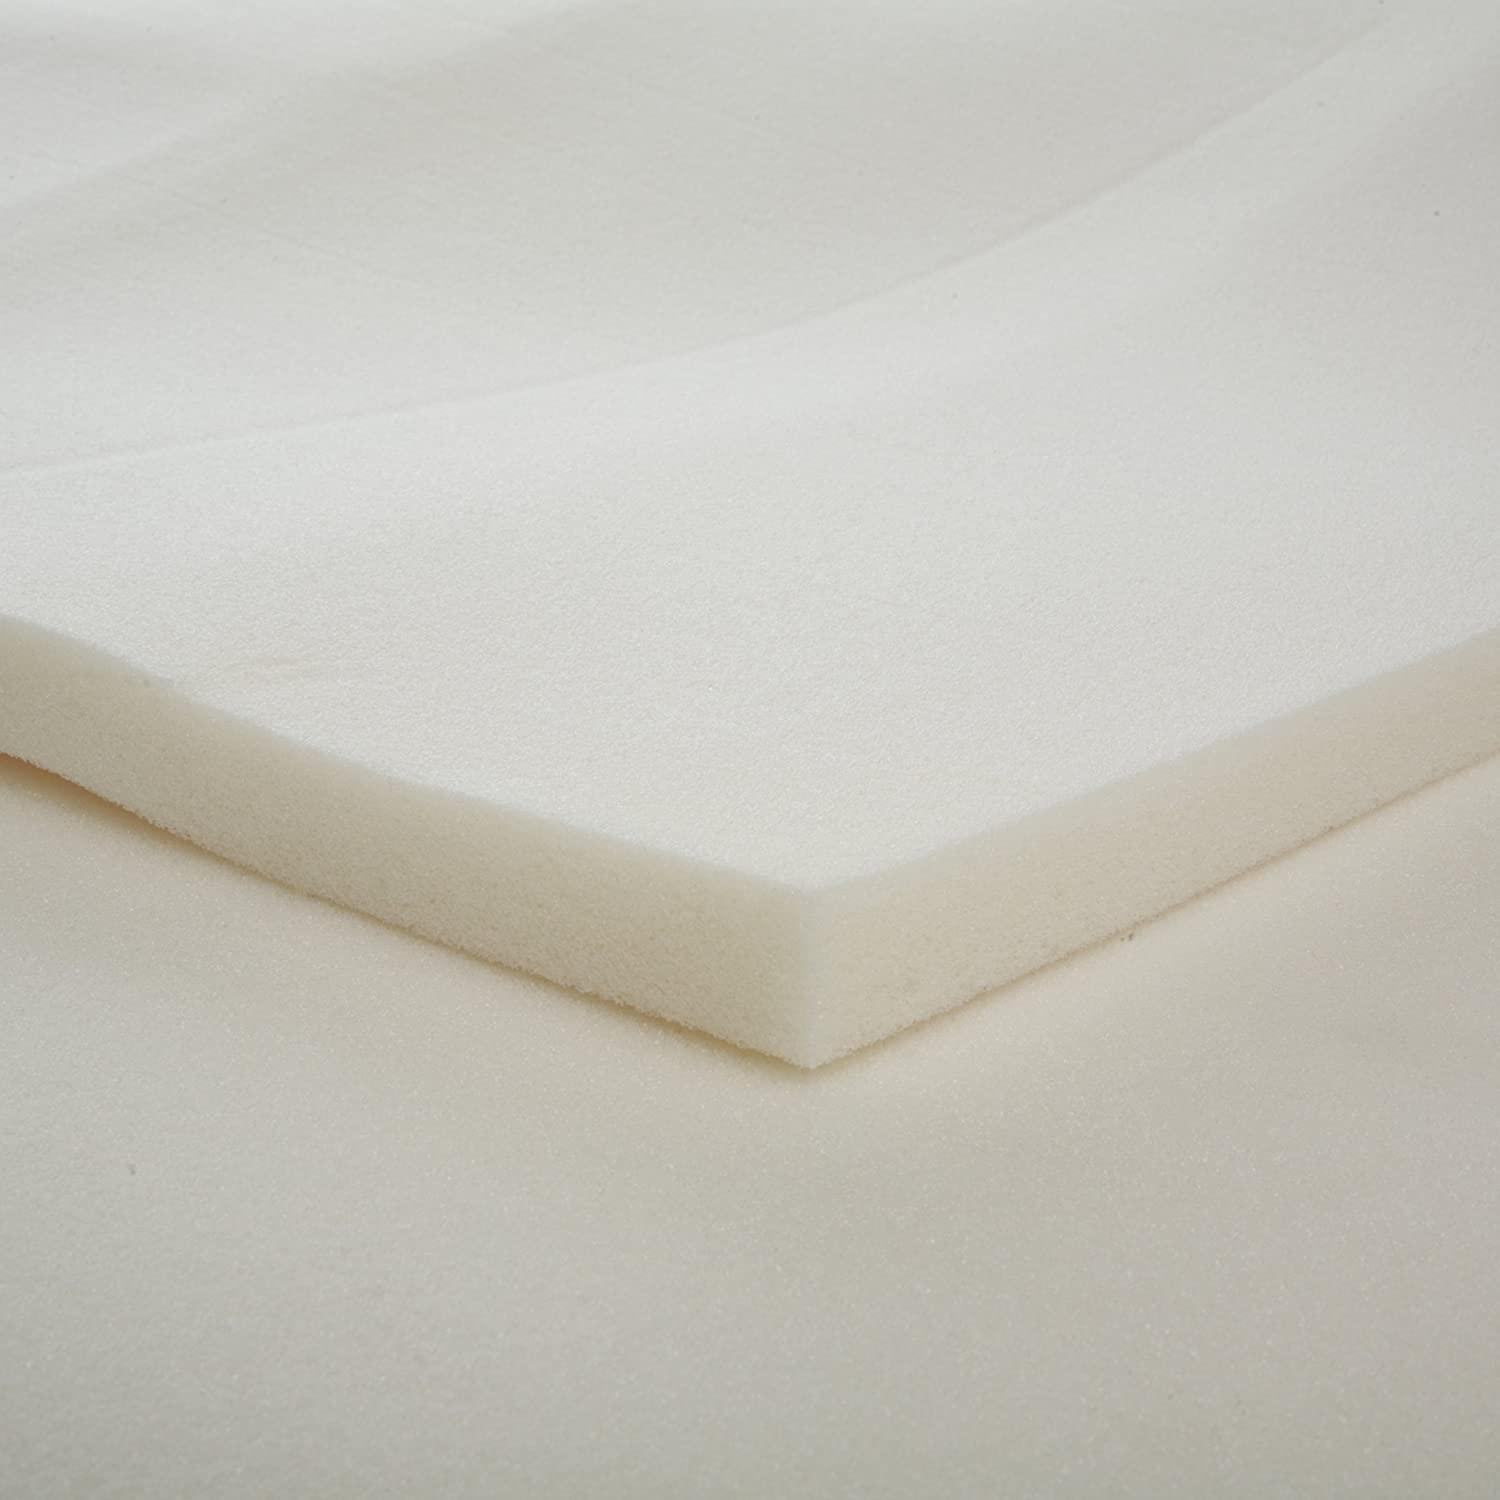 Amazon.com: 1-Inch Slab Memory Foam Mattress Topper, Full: Home & Kitchen